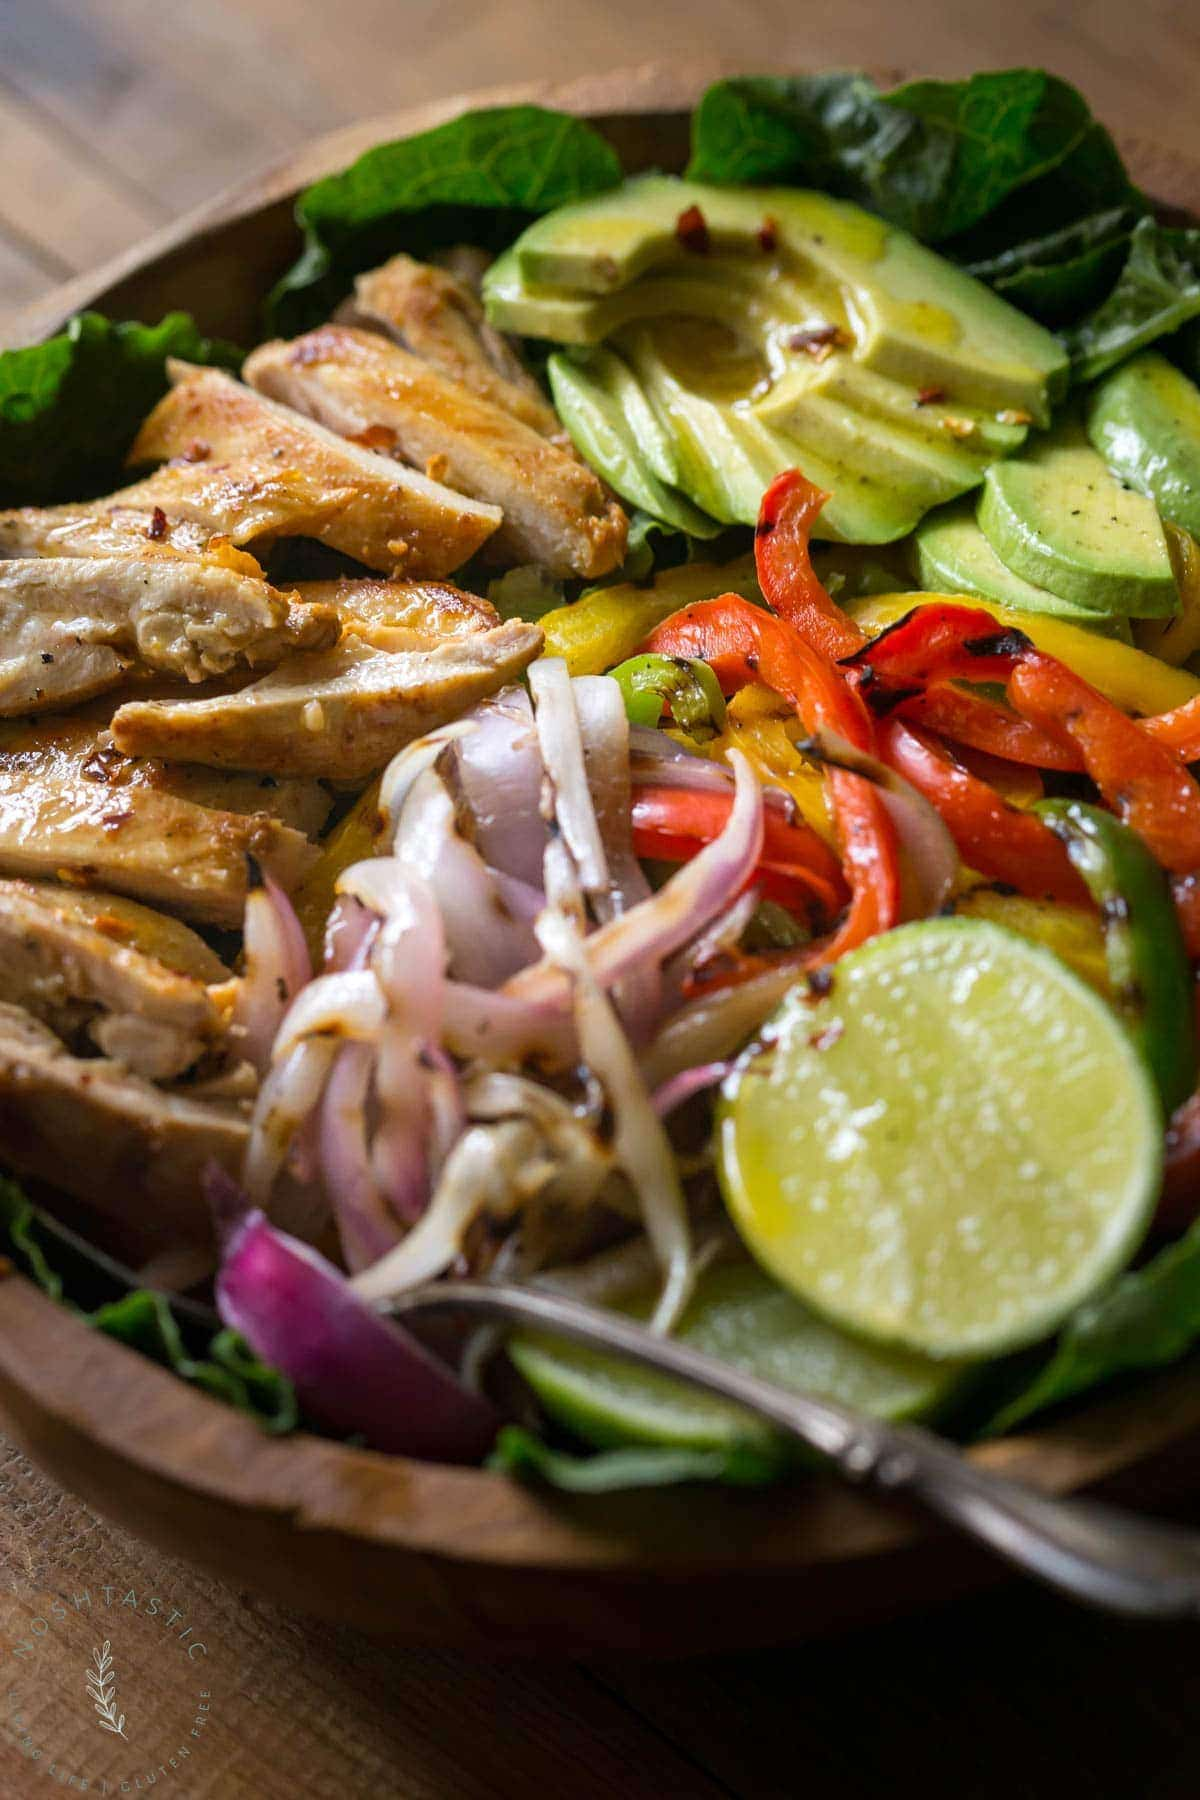 My Chicken Fajita Salad has all kinds of tasty ingredients including, grilled marinated fajita chicken, red onions, bell pepper, avocados and is topped with a fabulous honey lime salad dressing.| www.noshtastic.com | #chickenfajitas #chickenfajitasalad #fajitasalad #chickensalad #paleo #paleosalad #paleochicken #healthysalad #glutenfree #noshtastic #glutenfreerecipe